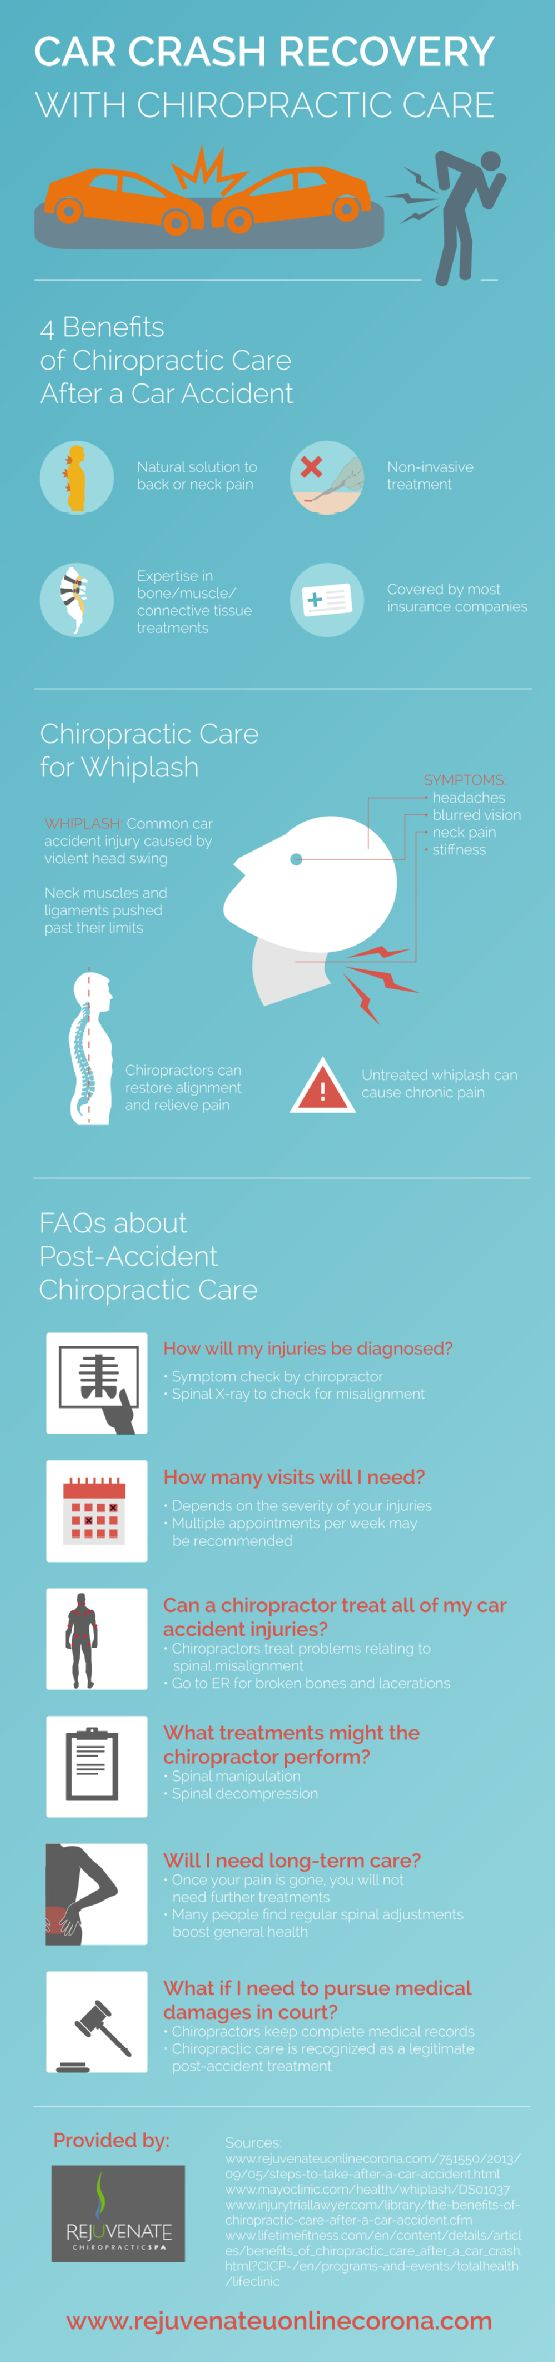 Chiropractors perform symptom checks to discover any injuries that may have occurred during a car accident. They also use spinal X-rays to check for misalignment. Find out what to expect from this type of treatment by clicking over to this infographic from a Corona chiropractor.